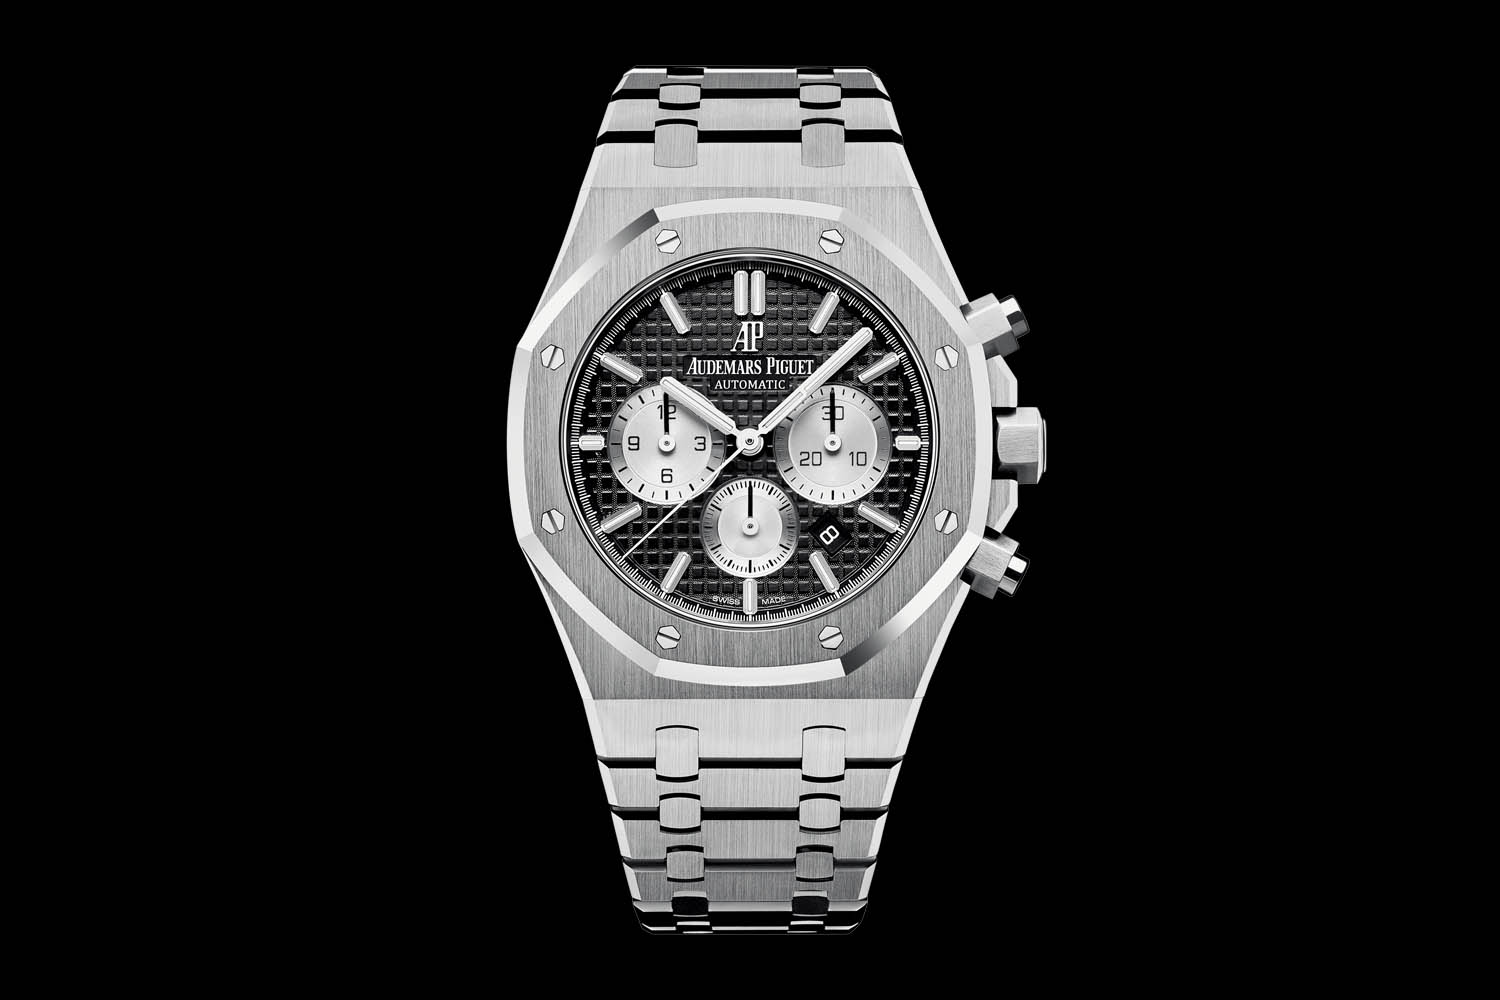 8bf37d97247f9 Introducing new Audemars Piguet Royal Oak Chronograph - SIHH 2017